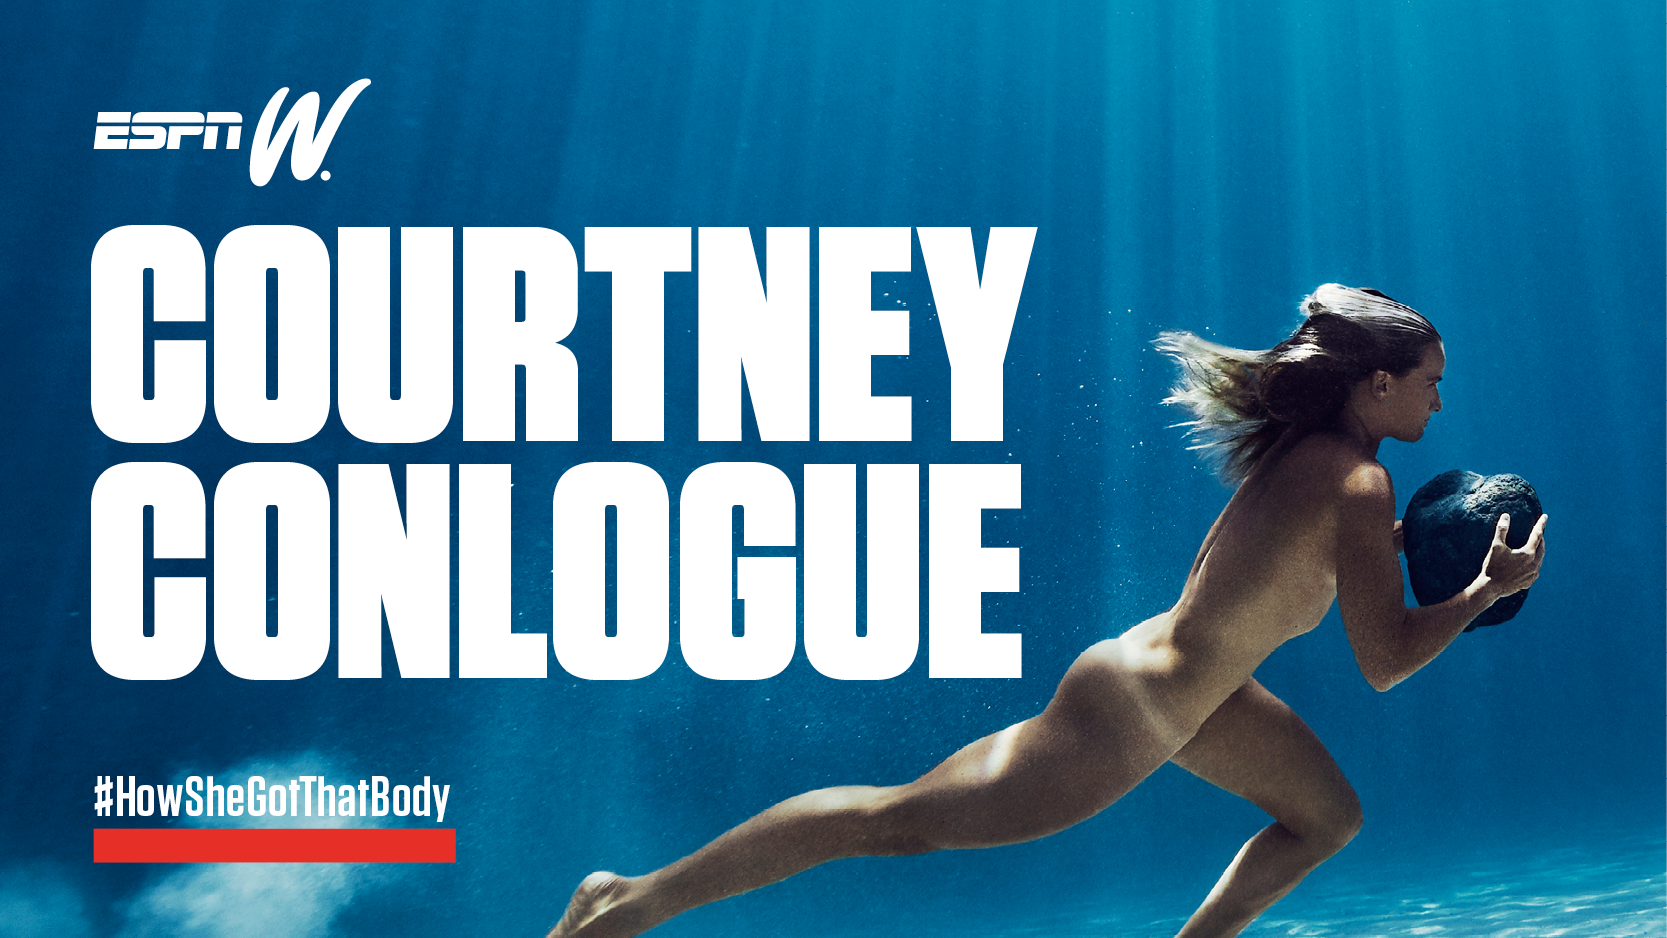 #HowSheGotThatBody Story Graphics -Courtney Conlogue